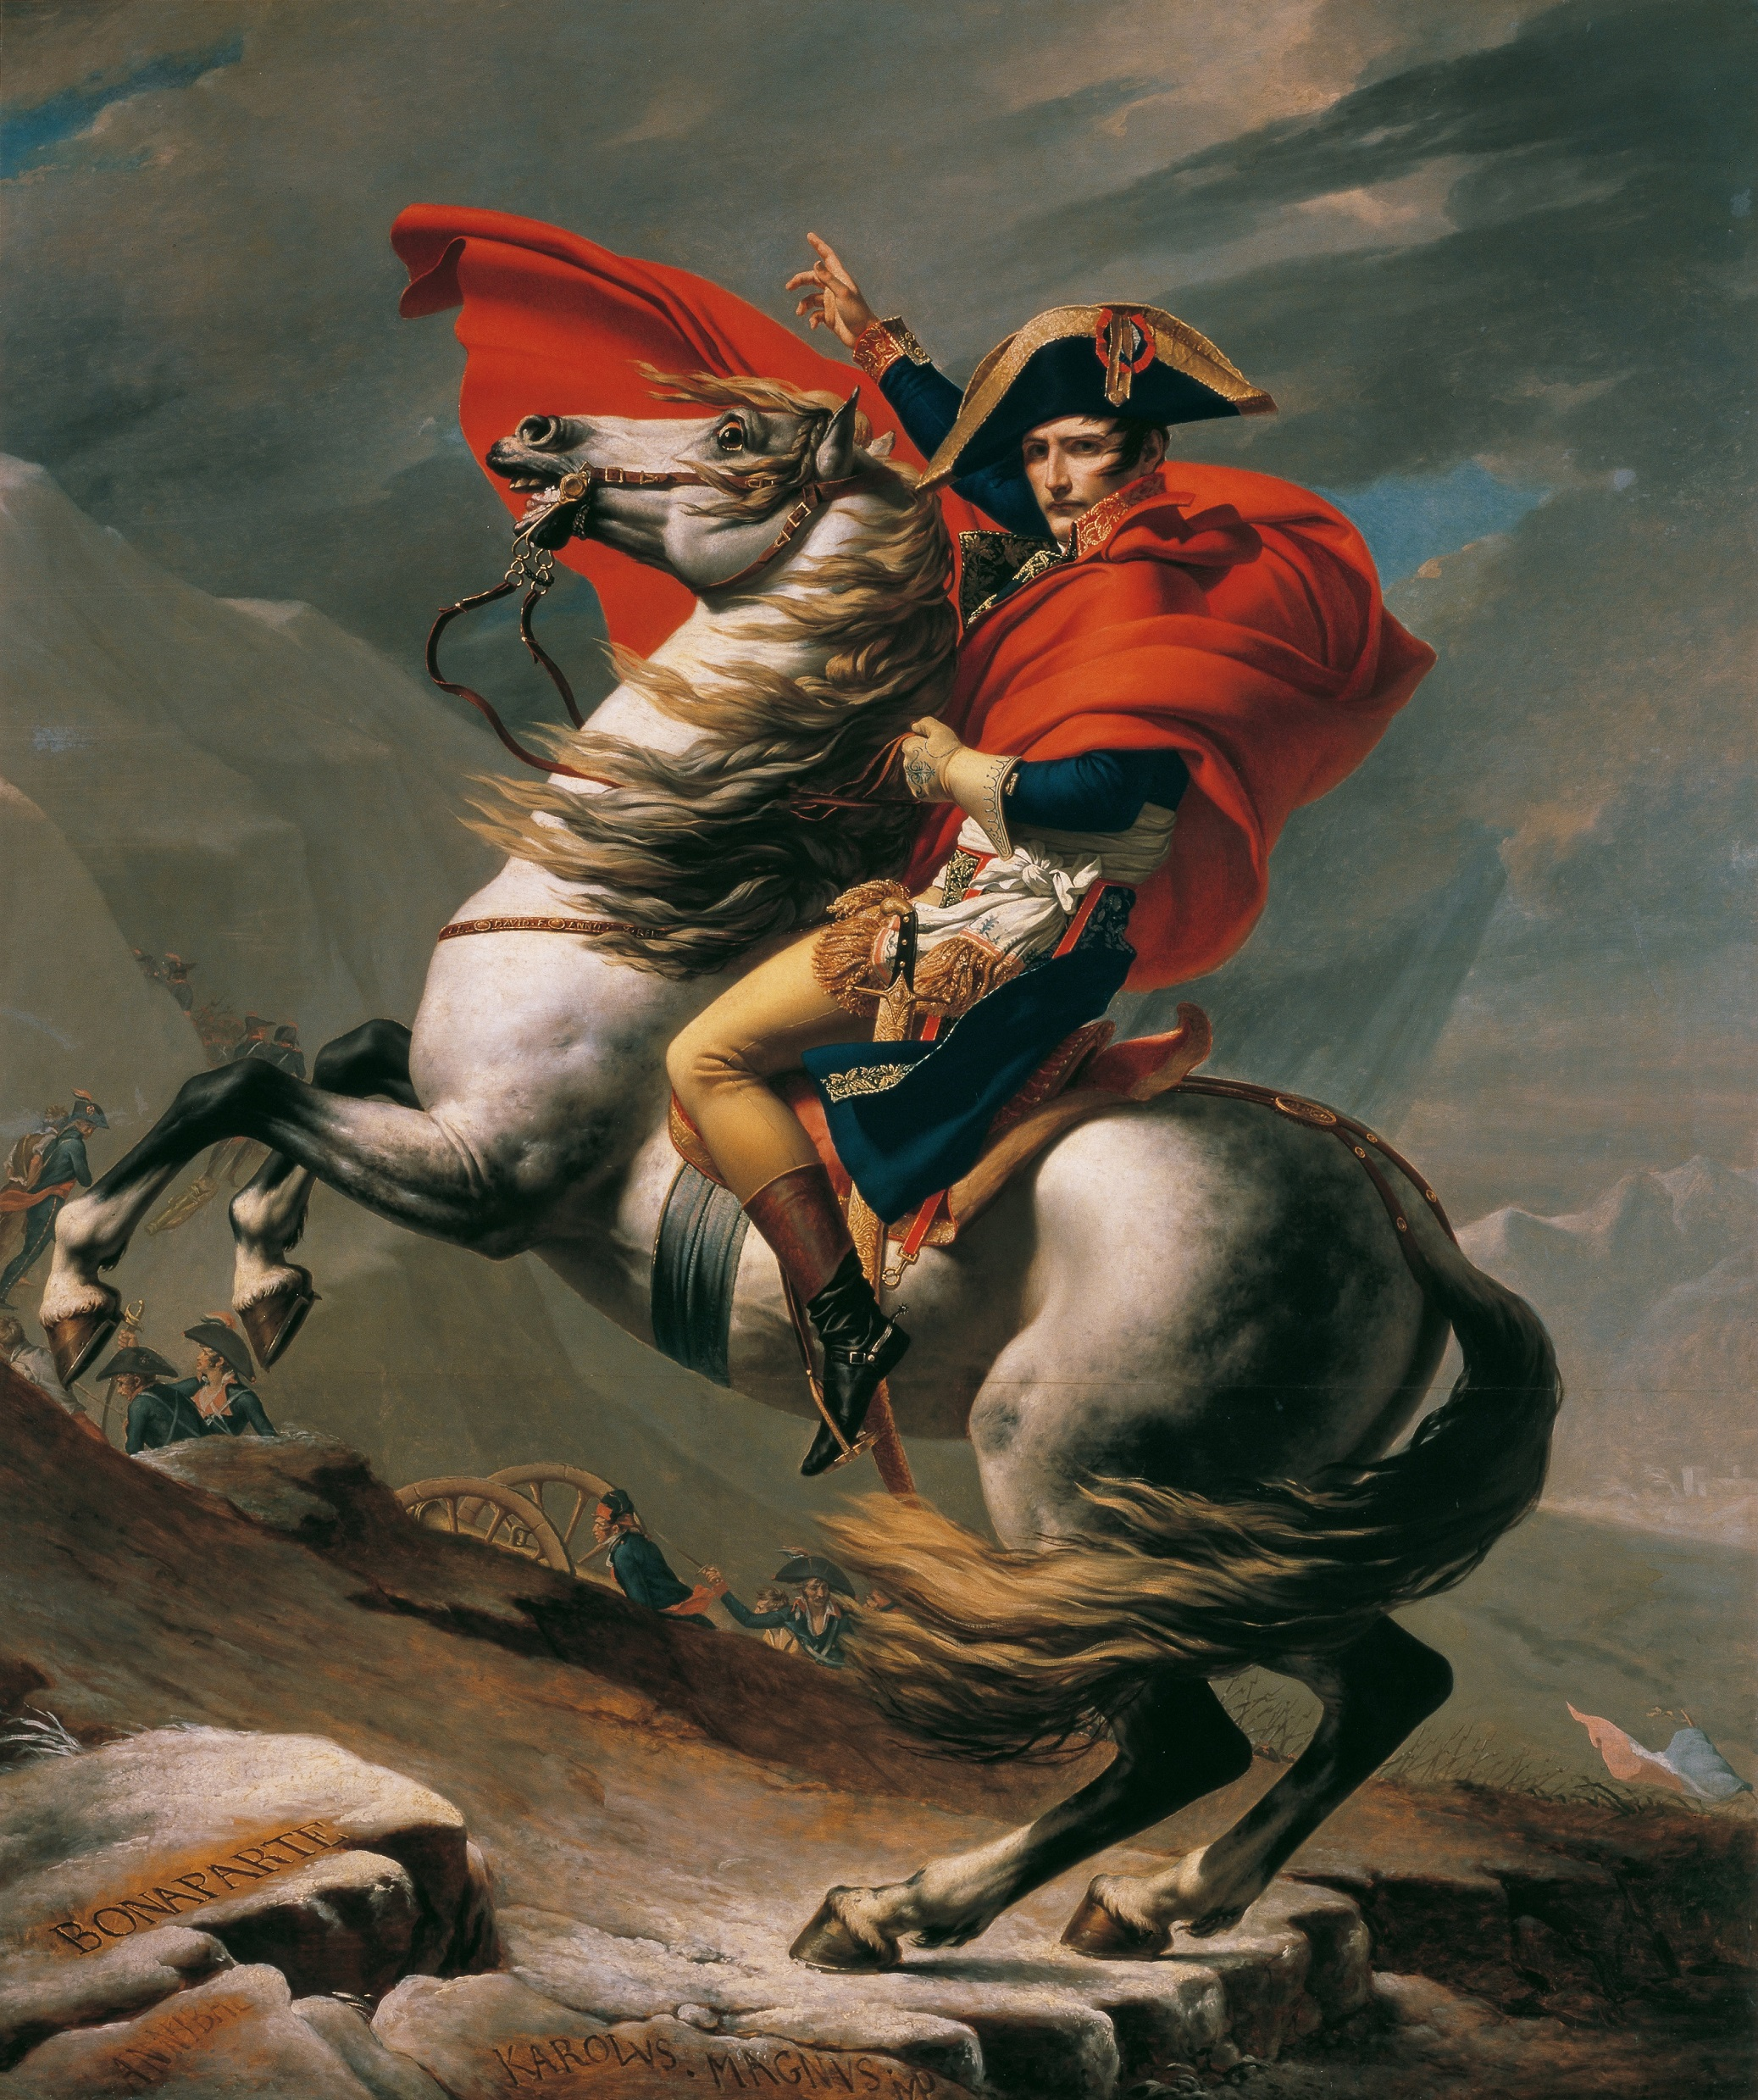 Napoleon Crossing the Alps painted by Jacques-Louis David. The horse in the painting is Marengo.